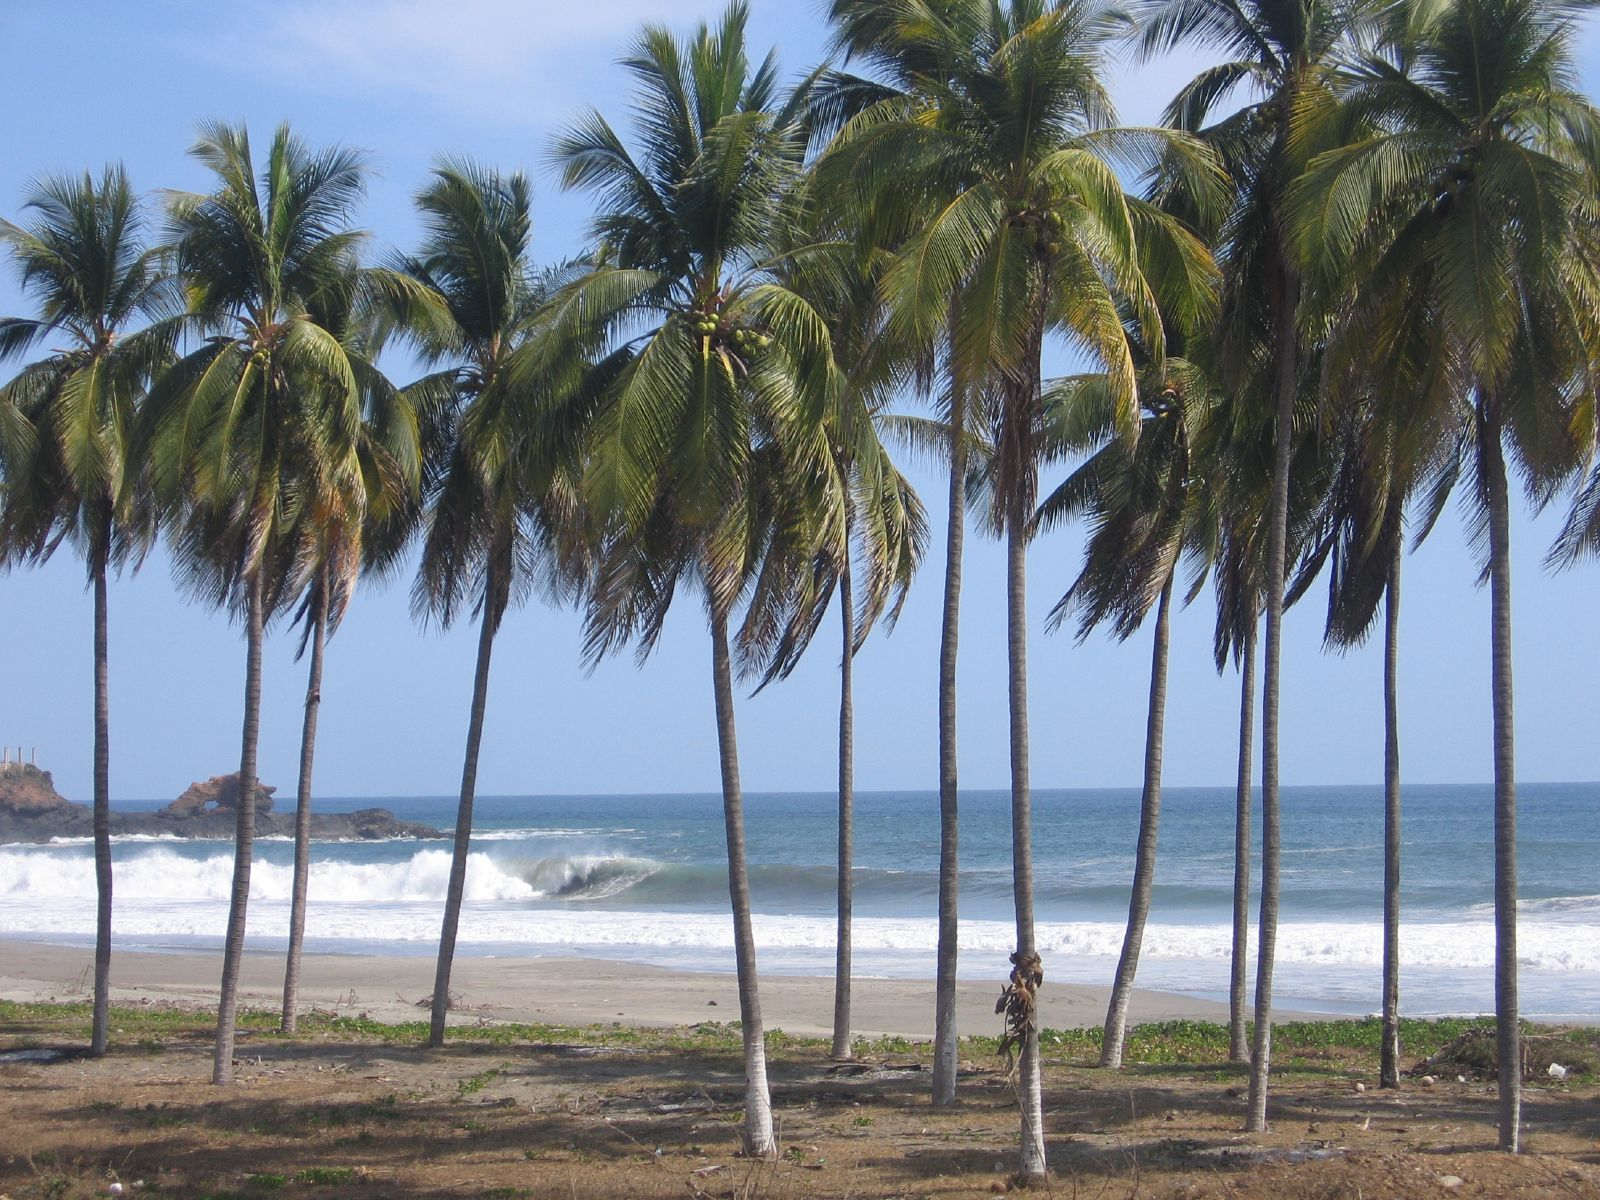 Beach in Michoacán | © Fer Quintana/Flickr